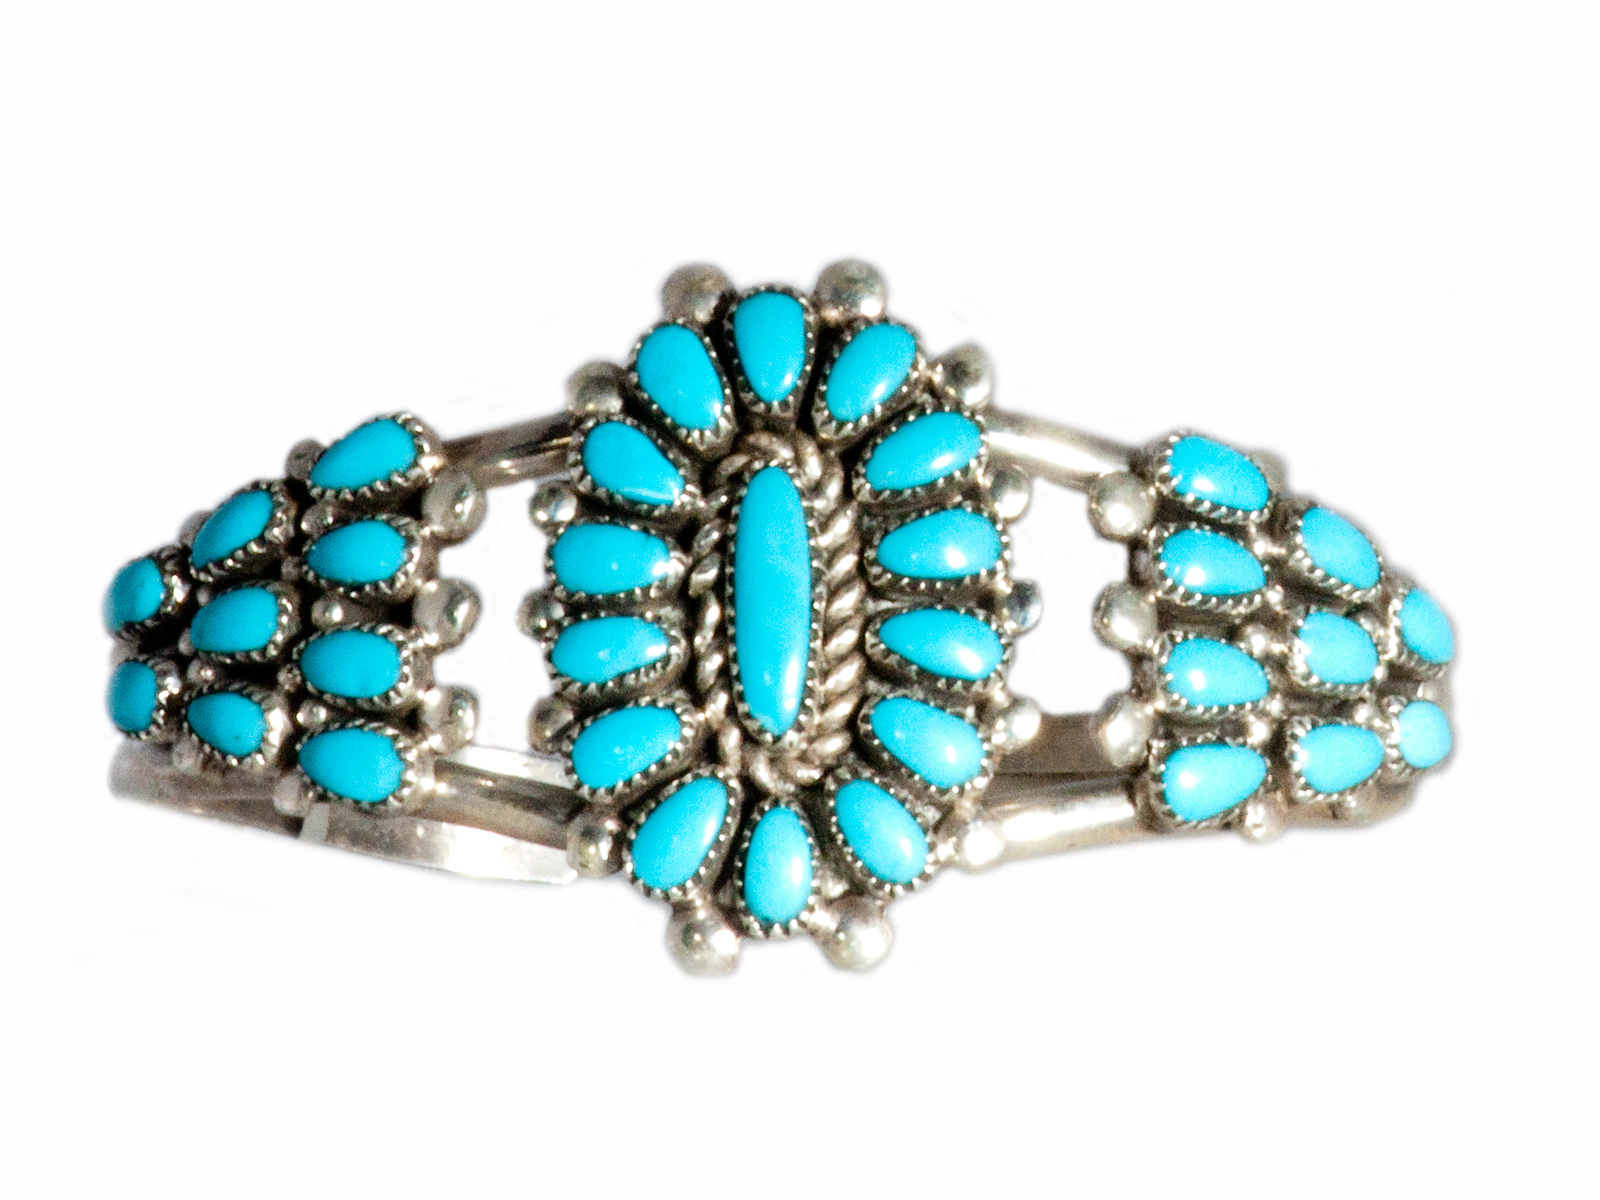 Sleeping Beauty Turquoise Cluster Cuff